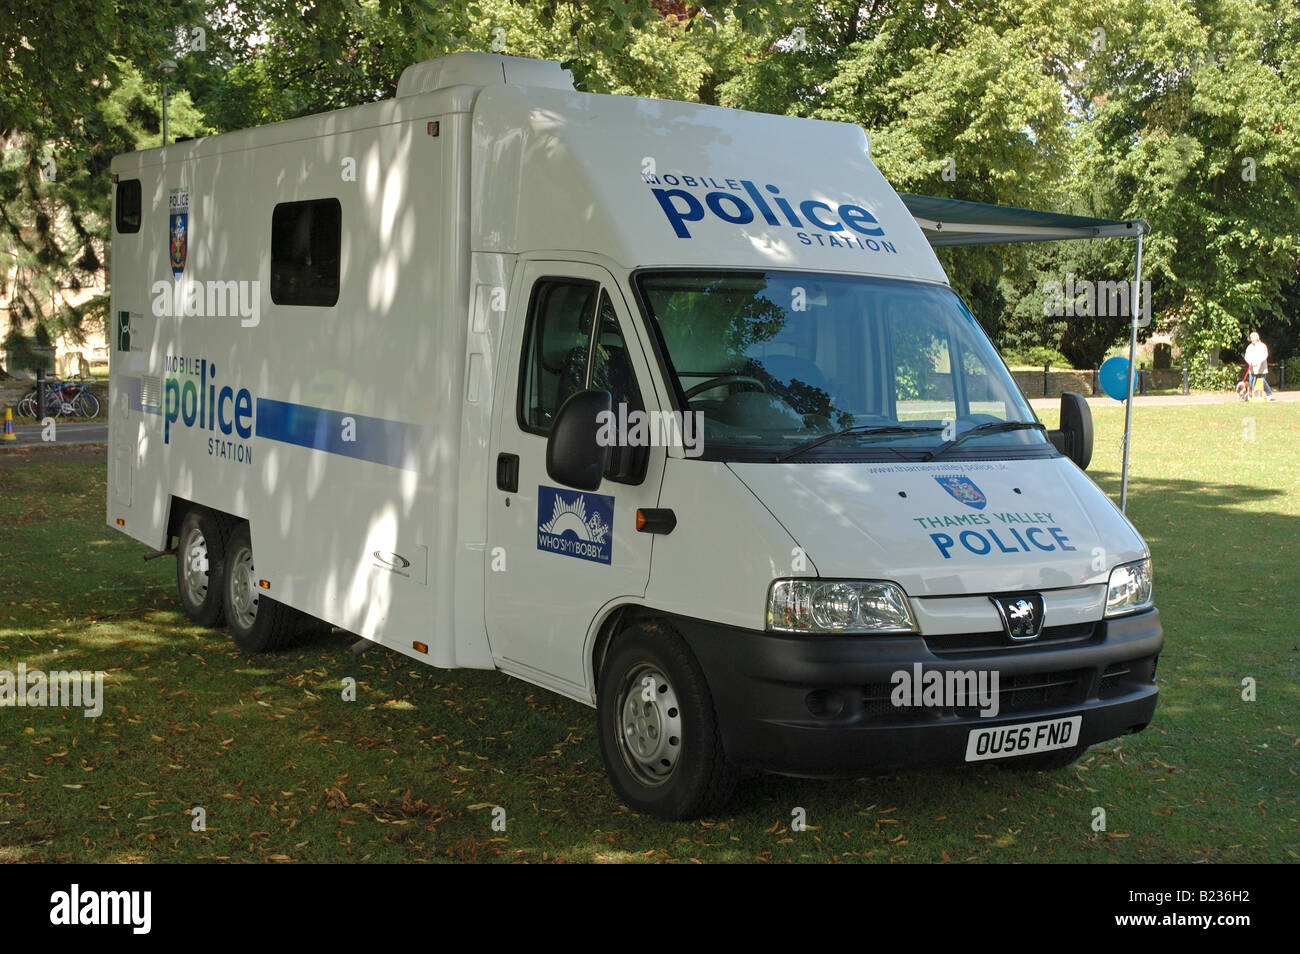 Mobile police van parked in a field - Stock Image